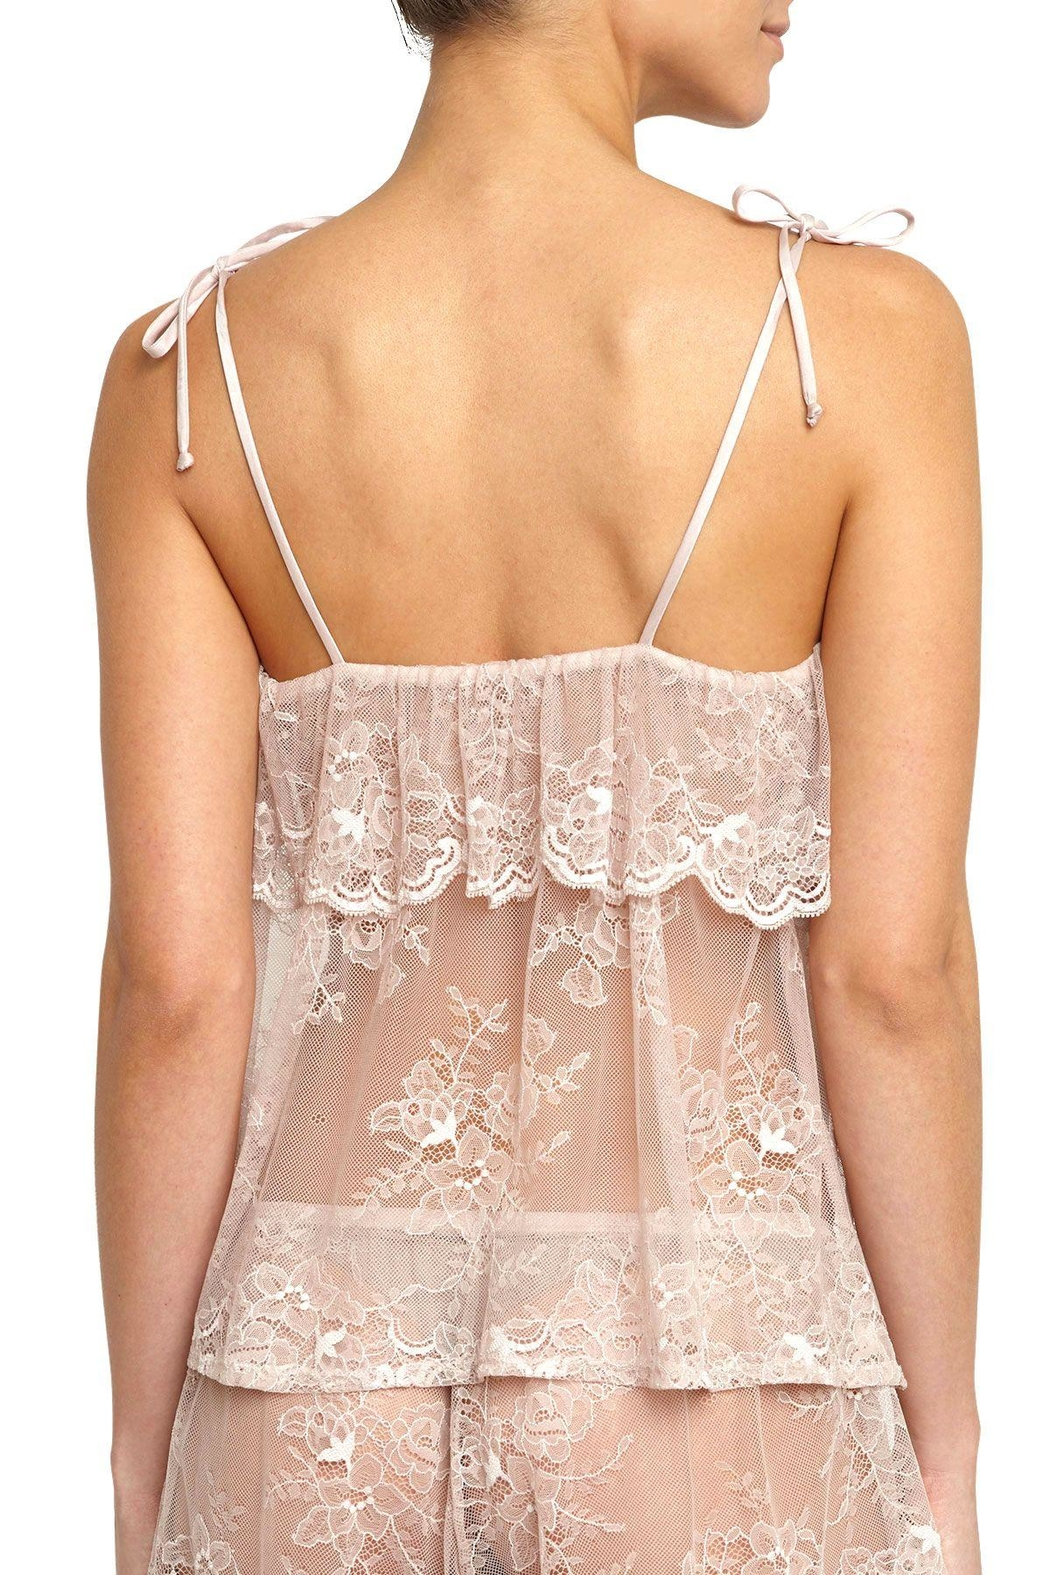 Eberjey Aurora Lace Cami - Front Full Image